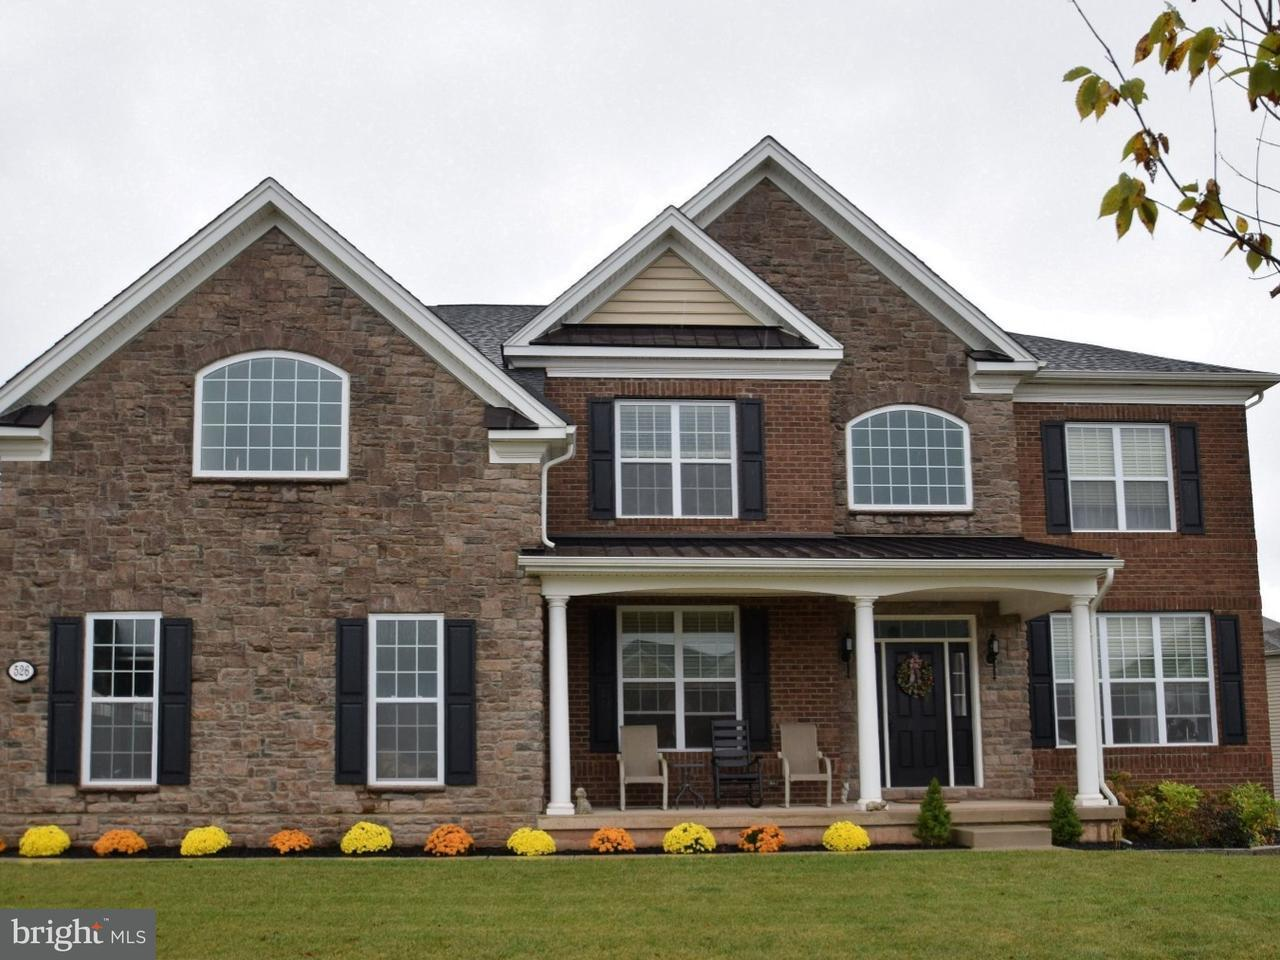 Single Family Home for Sale at 526 GRAYSON Lane Harleysville, Pennsylvania 19438 United States